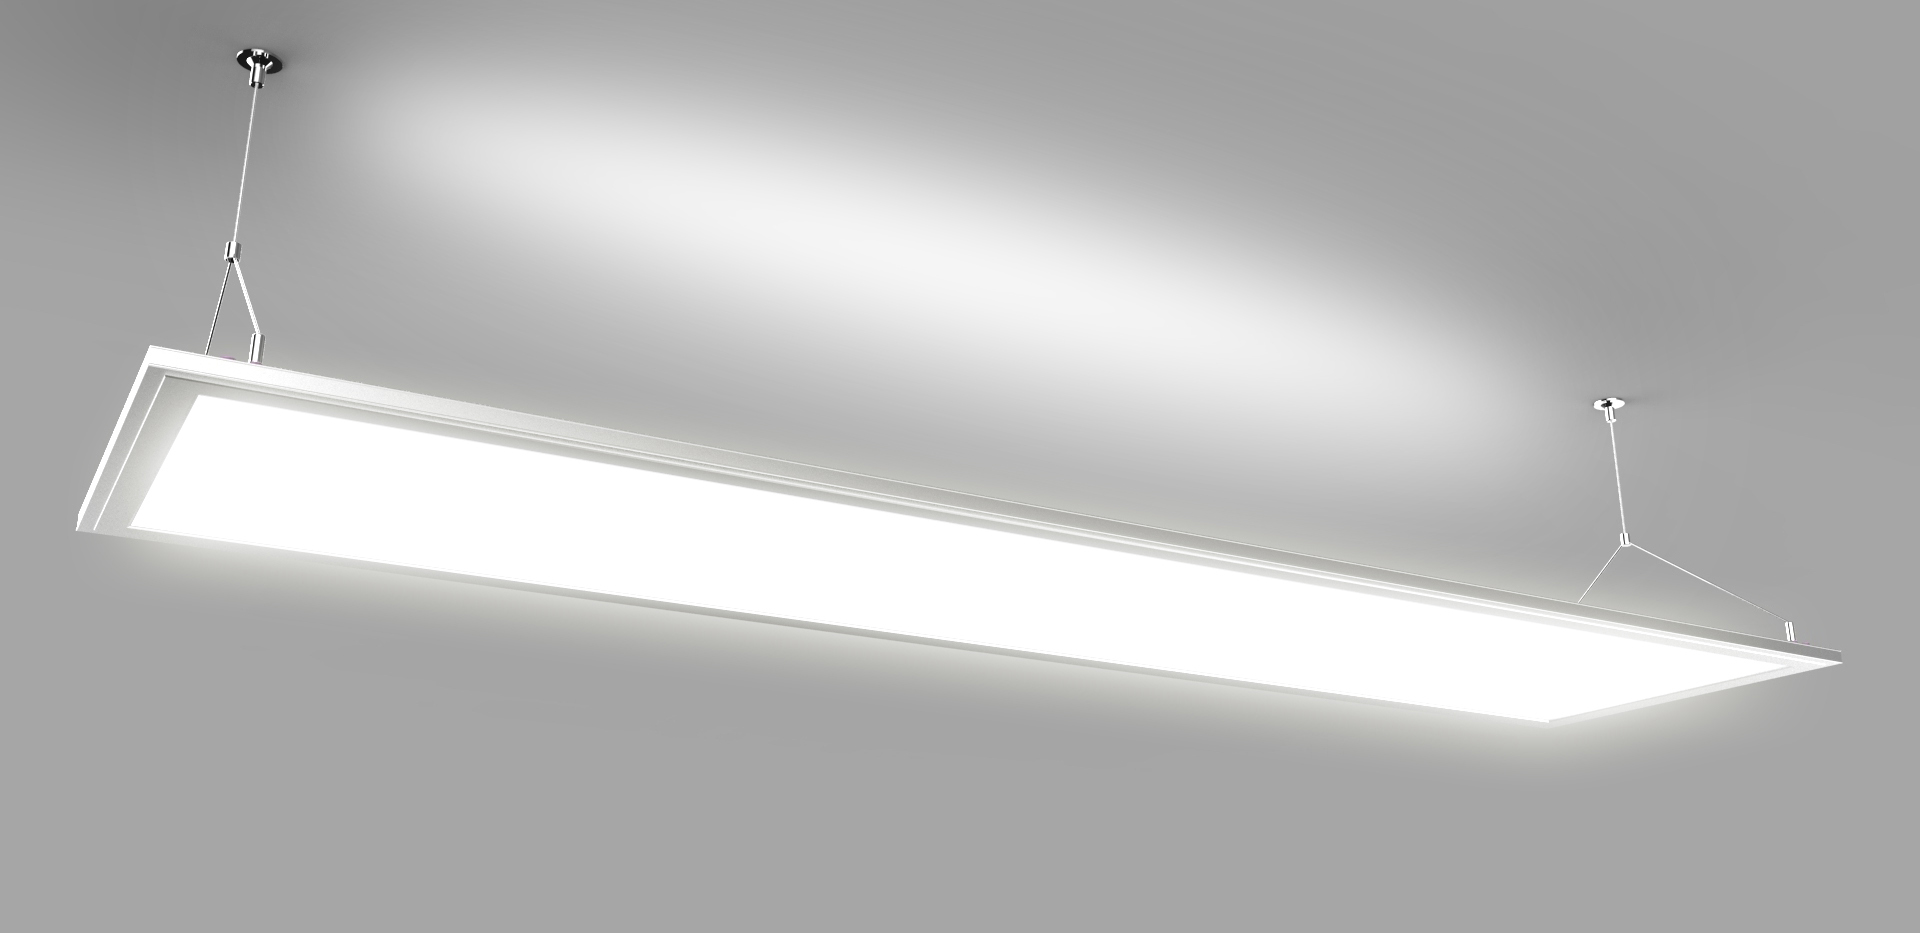 LED Pendelleuchte direkt indirekt Mero Float